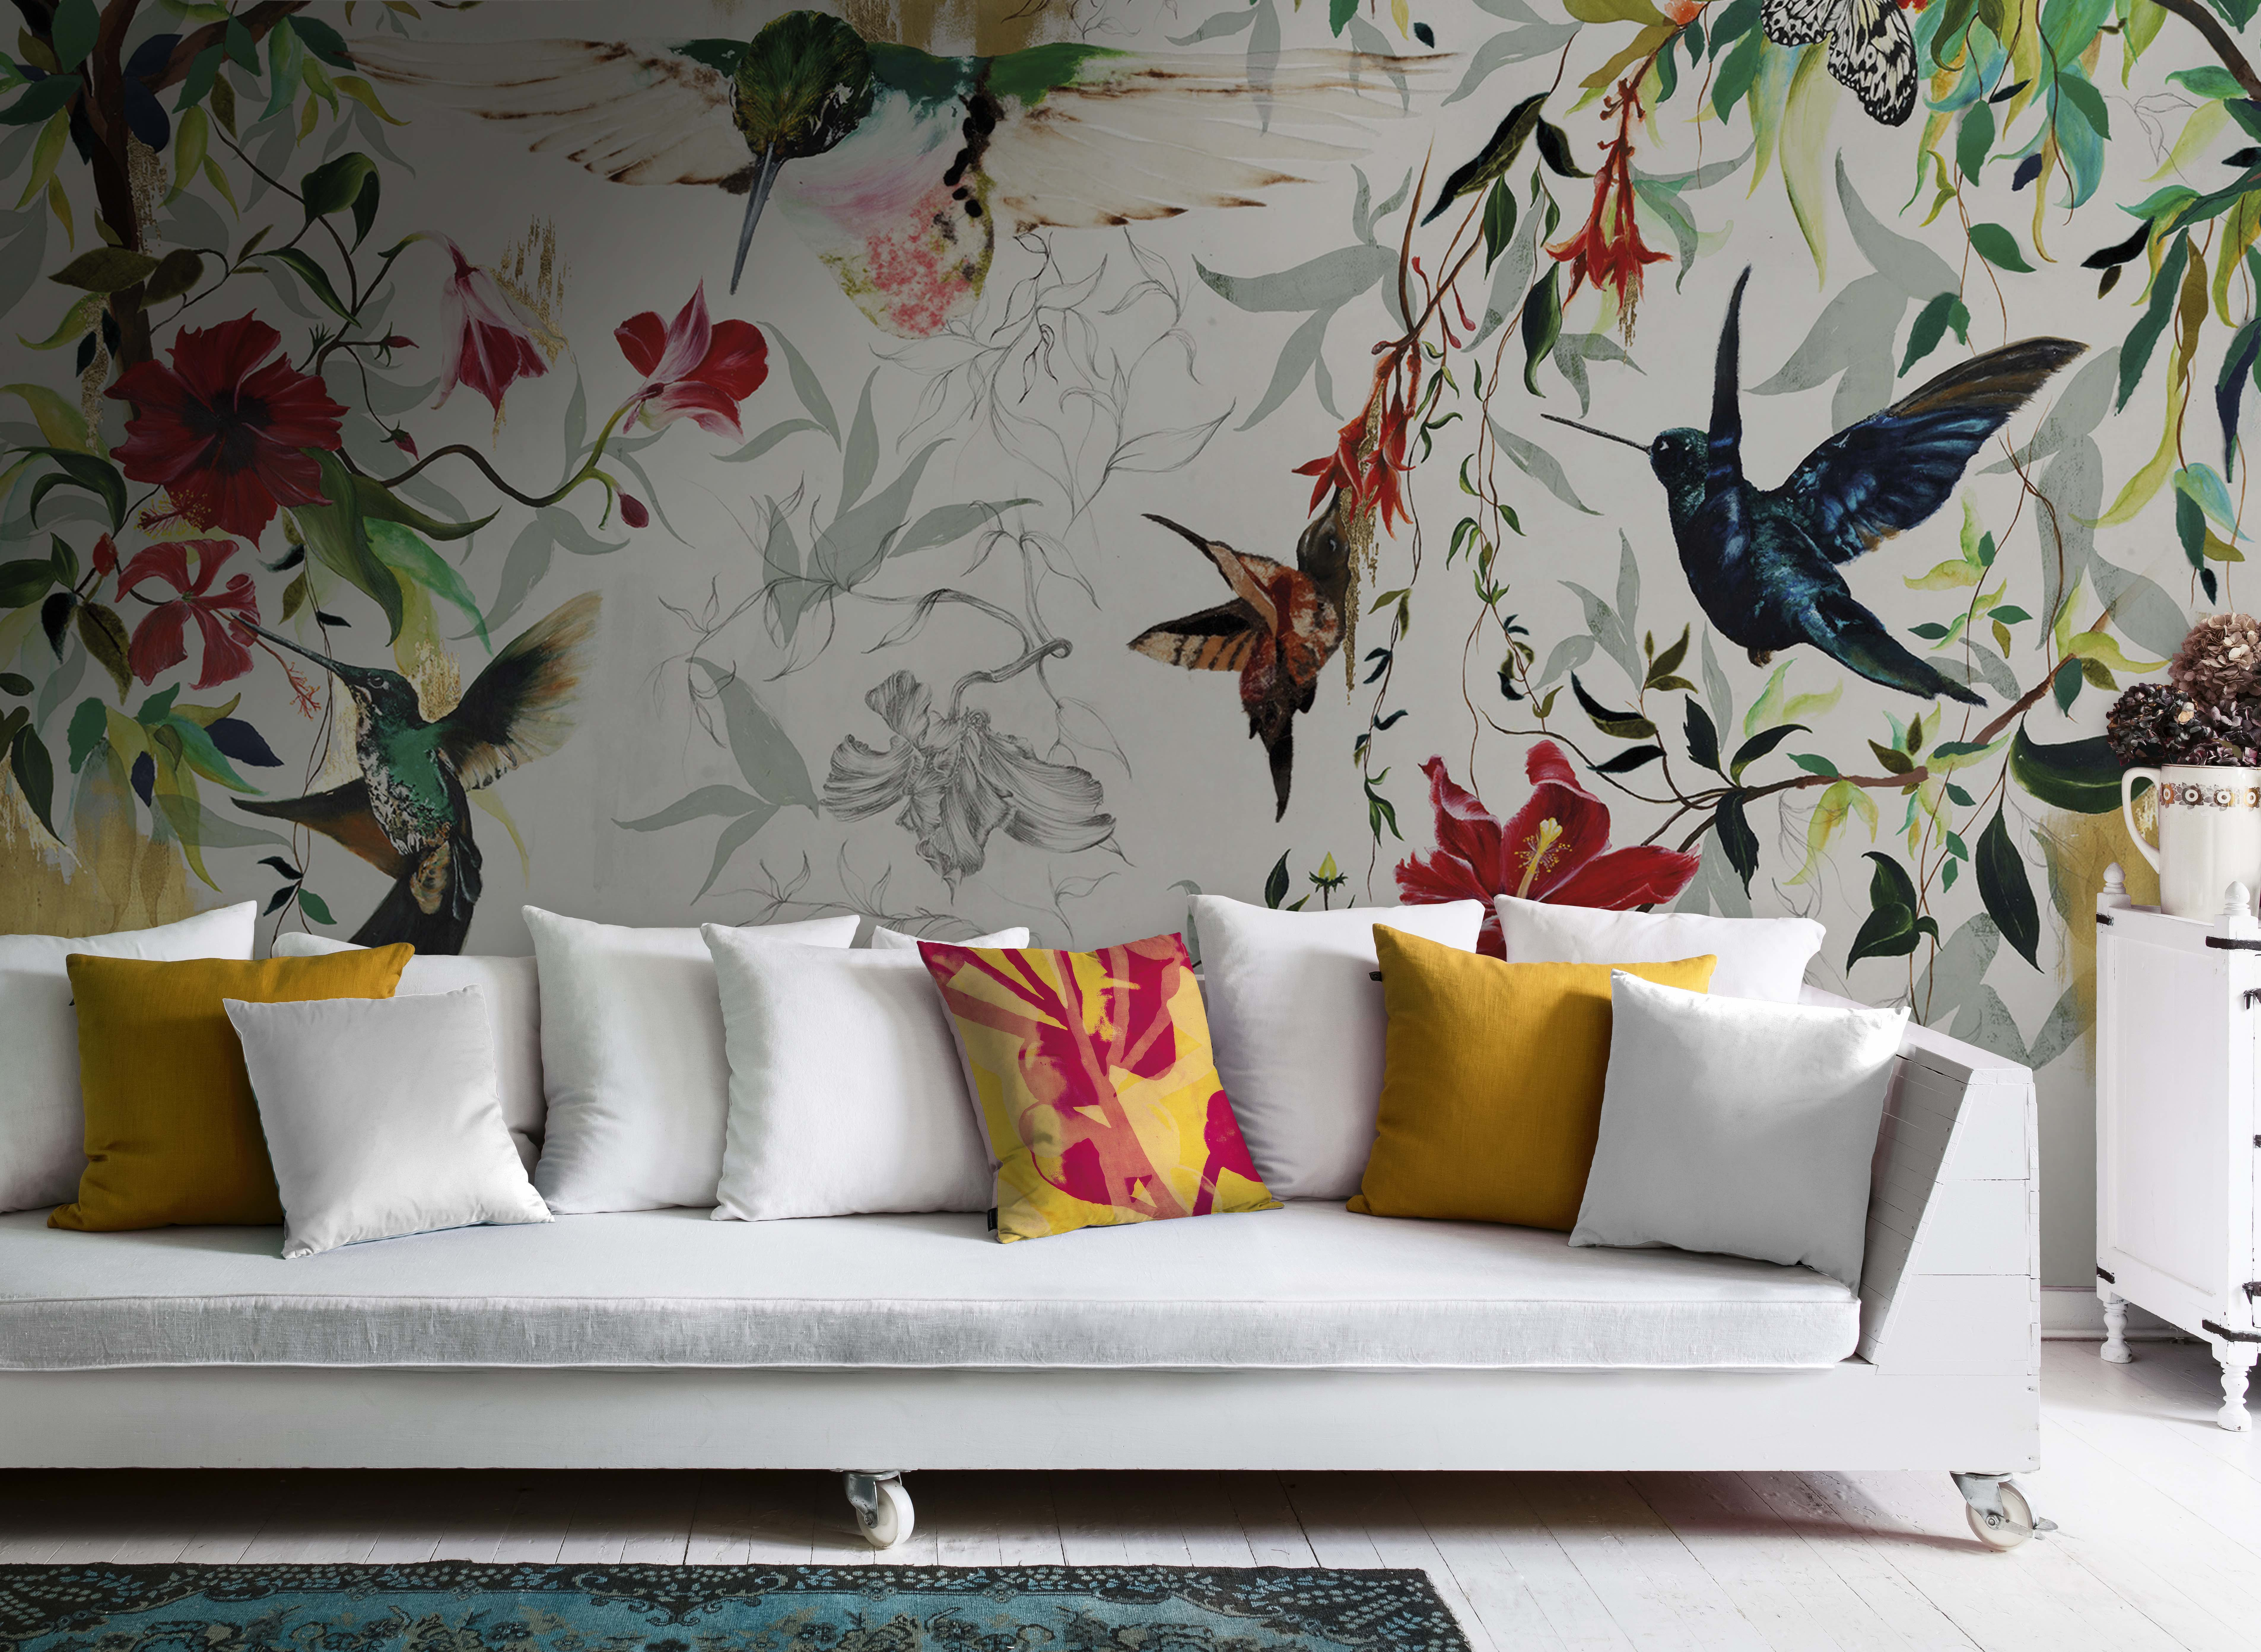 Botanical Statement Walls The Fastest Growing Interiors Trend